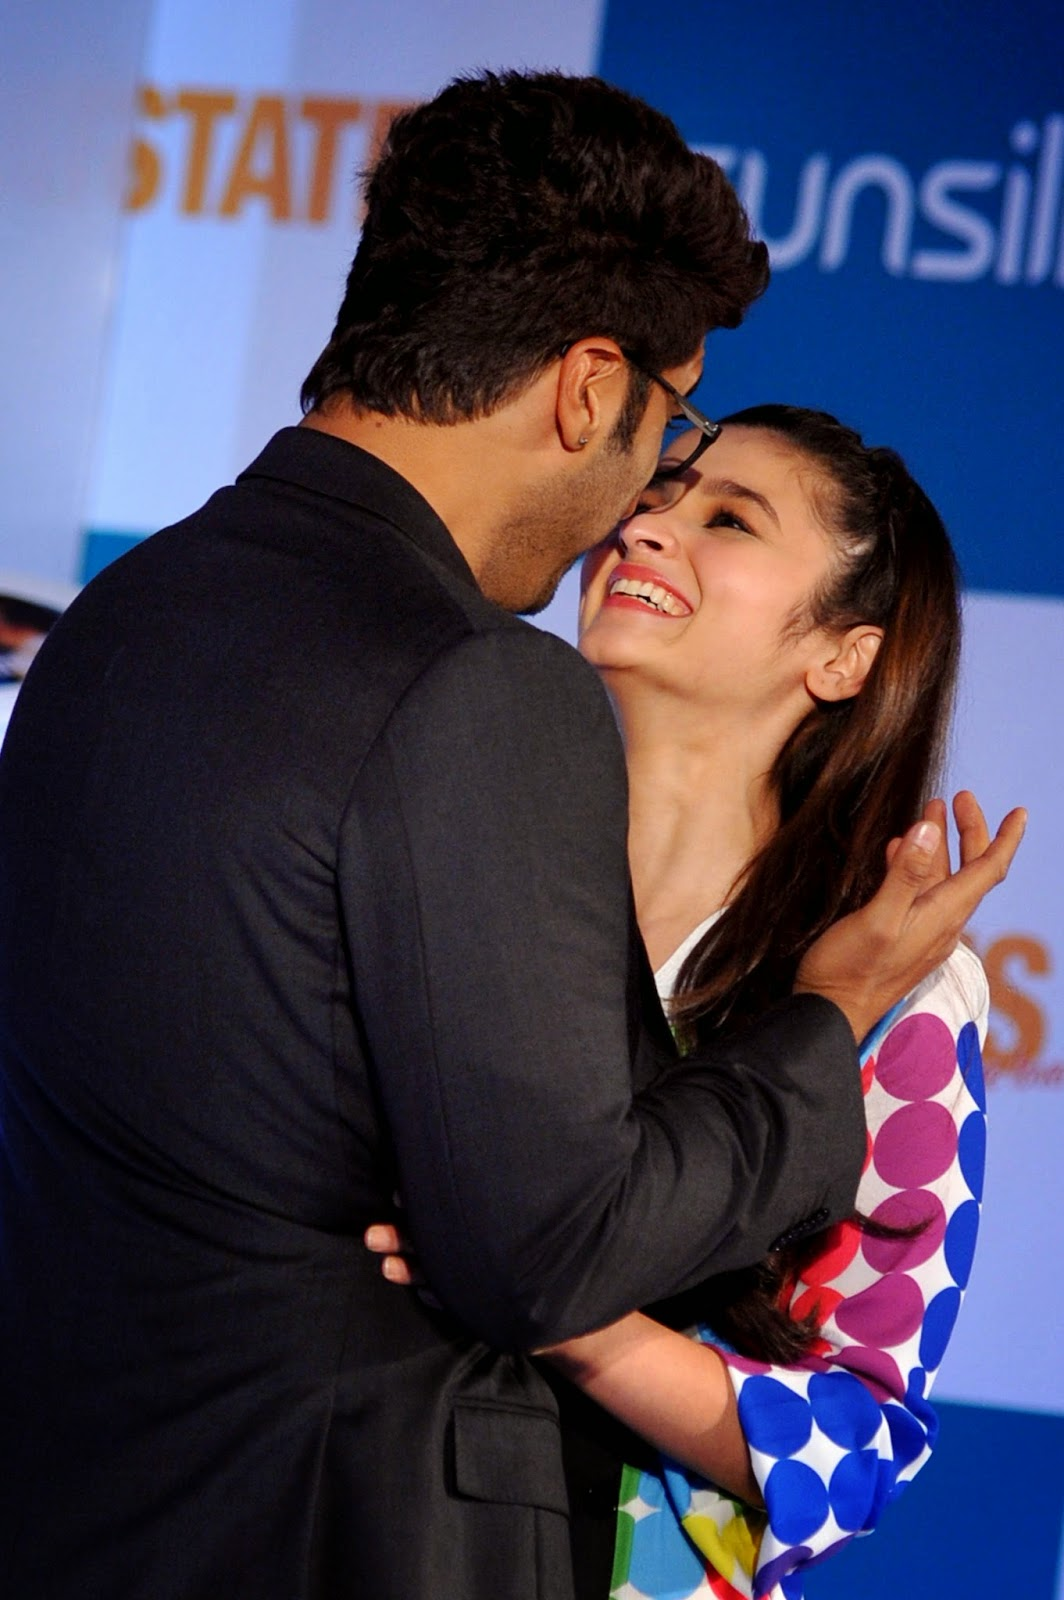 Actress, Alia and Arjun Love Affair, Alia Bhatt, Alia Bhatt and Arjun Kapoor, Arjun Kapoor, Bollywood, Daughter, Film 2014, Karan Johar, Kissing Scenes, Love Affair, Mahesh Bhatt, Movies, Two States,